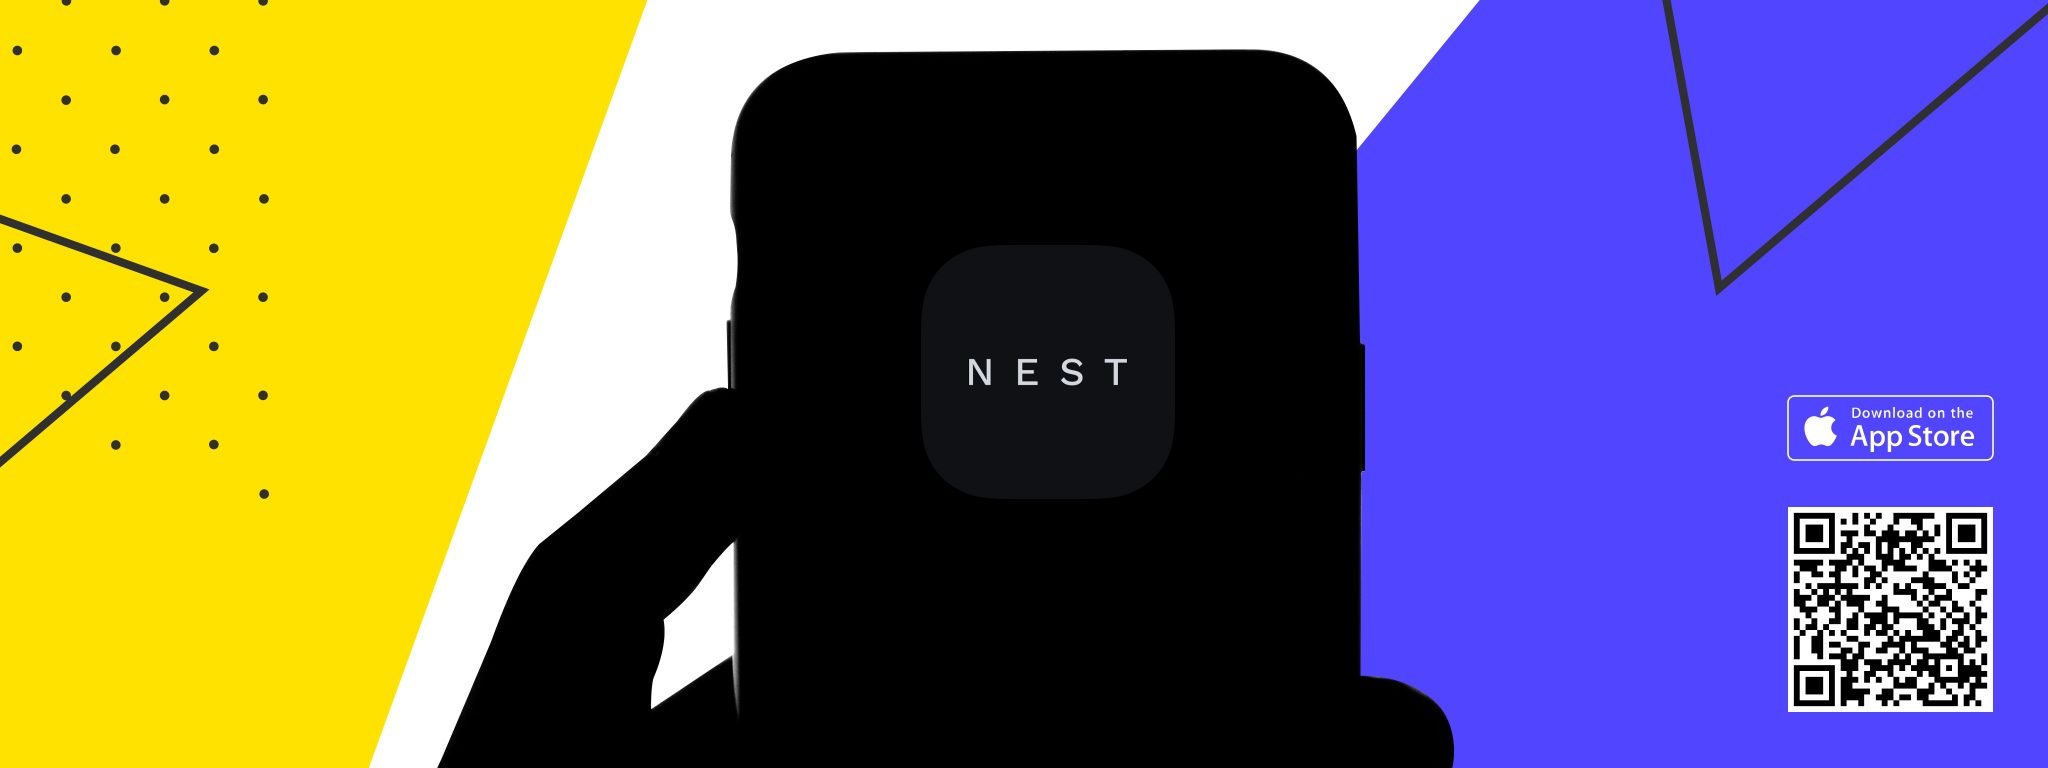 Hand holding a phone with Nest app on it